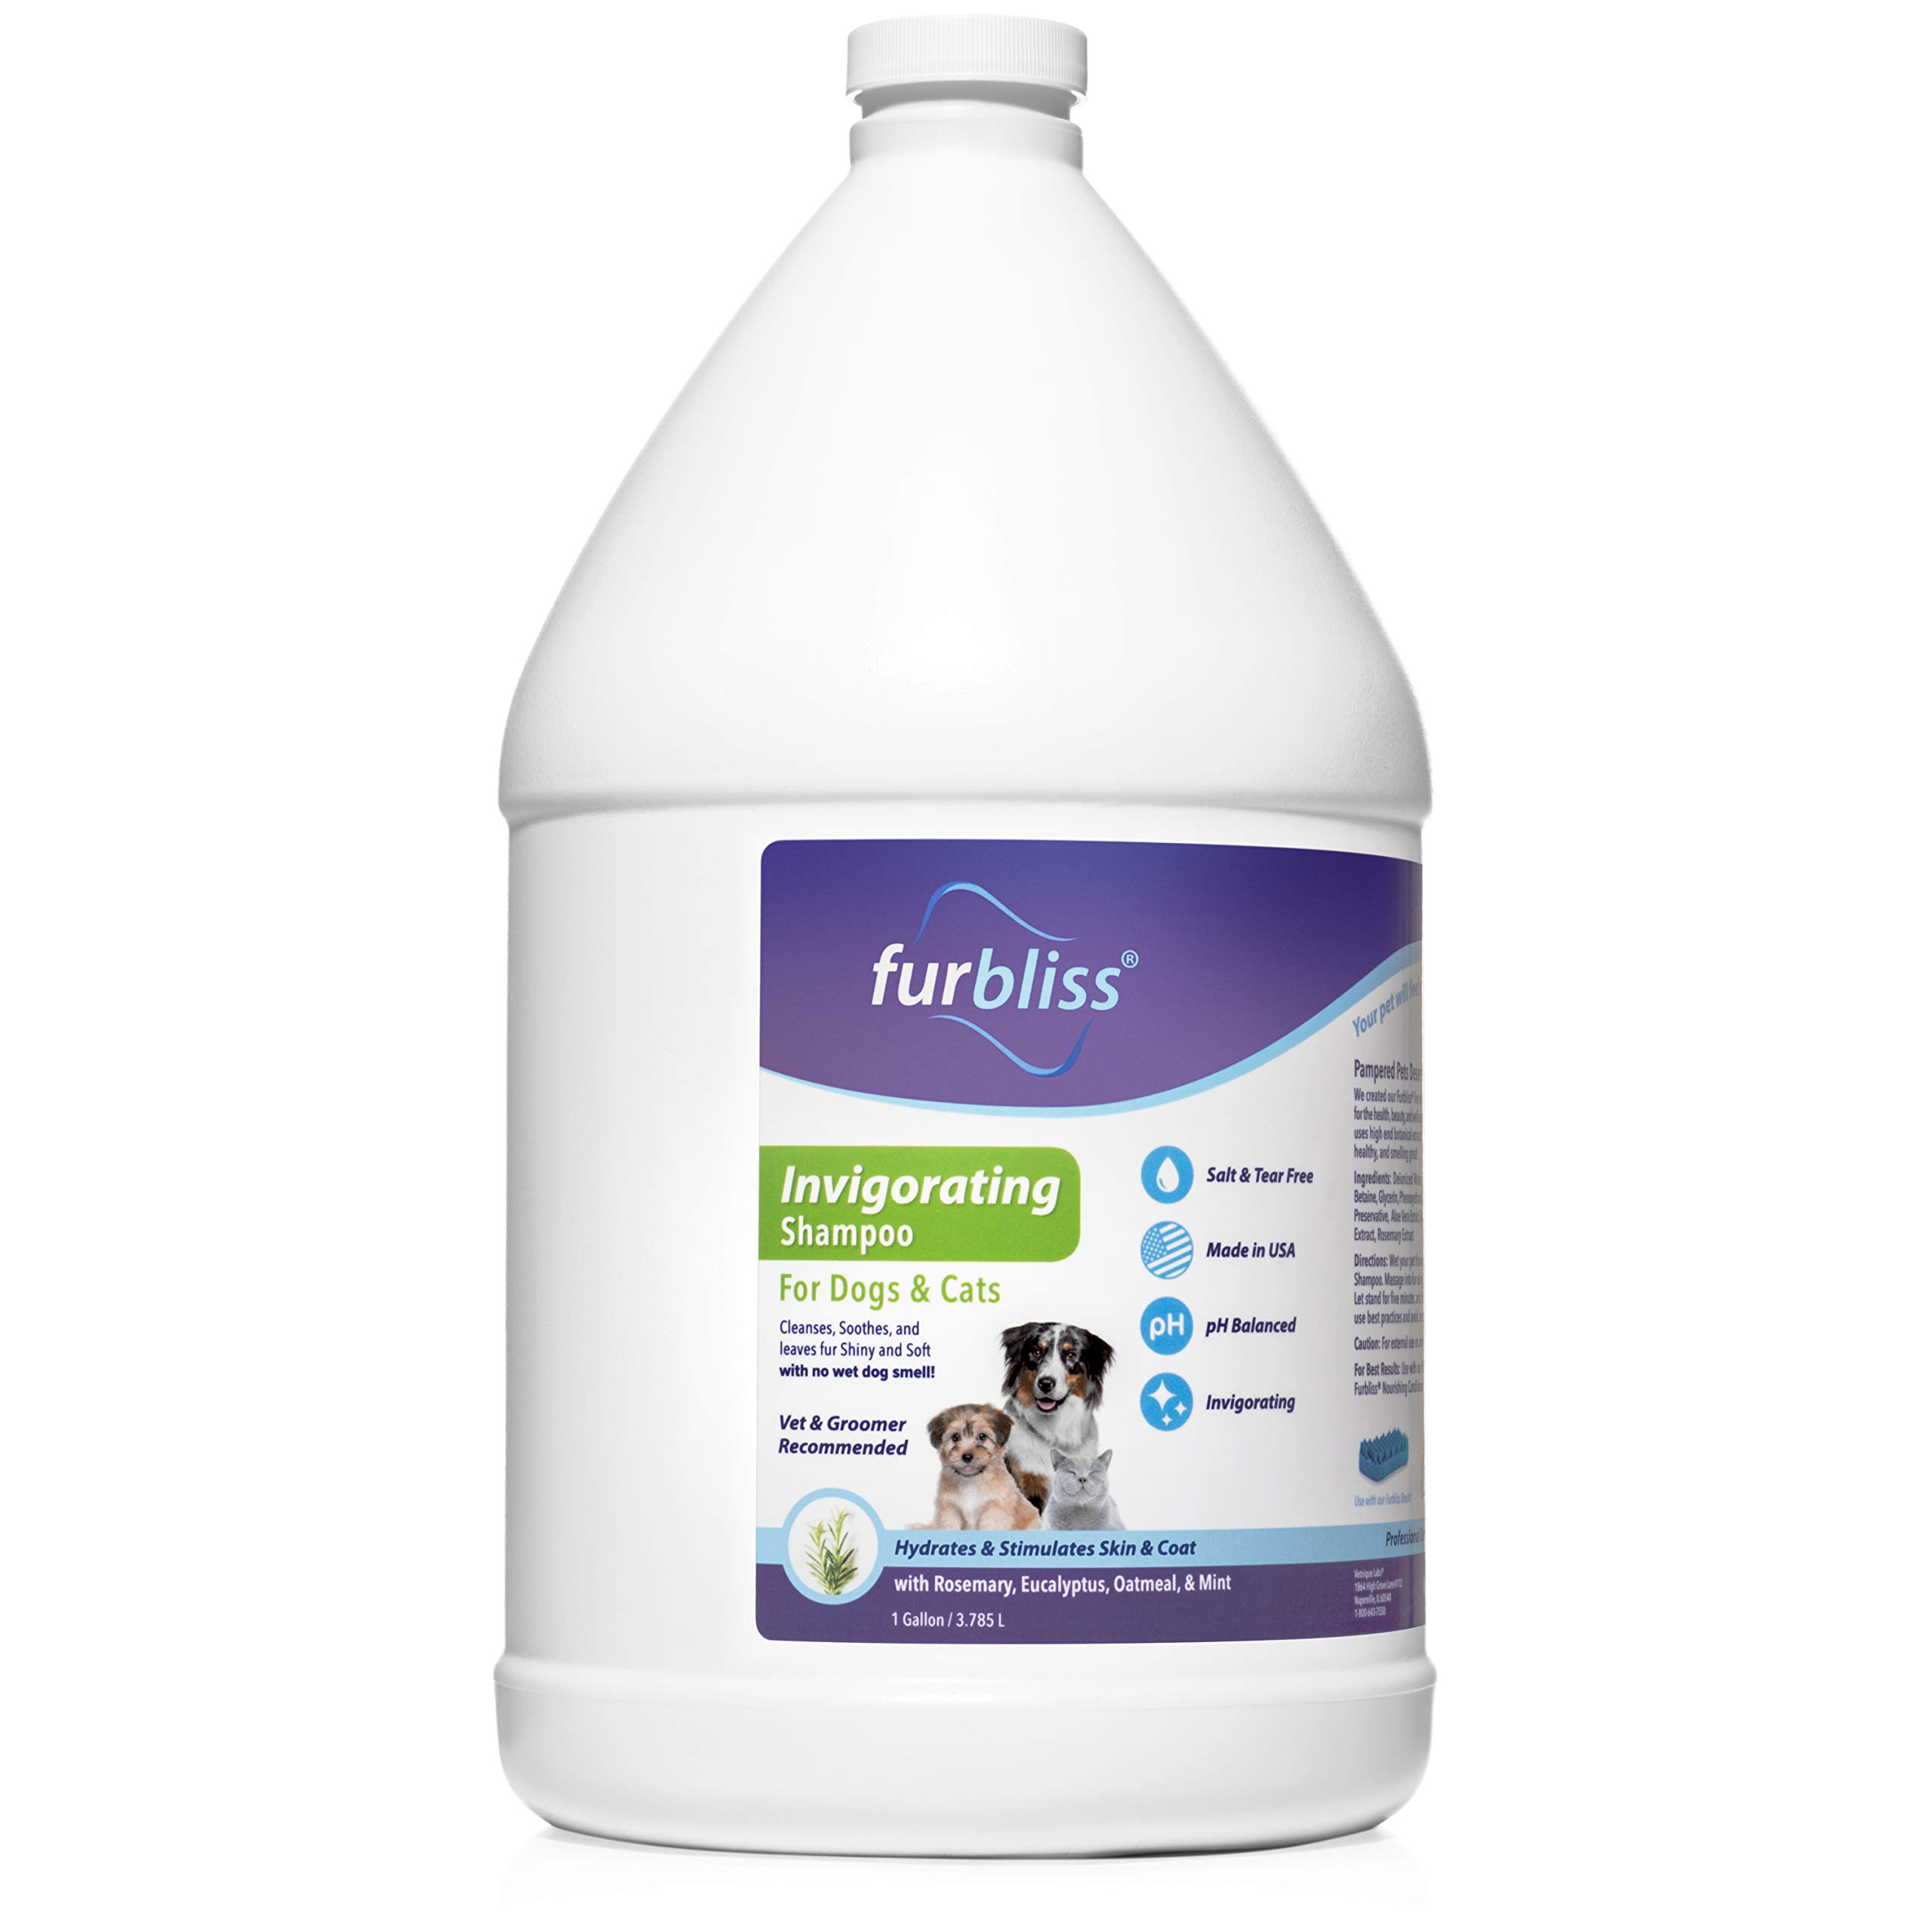 Furbliss Invigorating Grooming Dog & Cat Pet Shampoo - No Wet Dog Smell, Tear Free, Smelly Dog Relief (Gallon)   by Furbliss